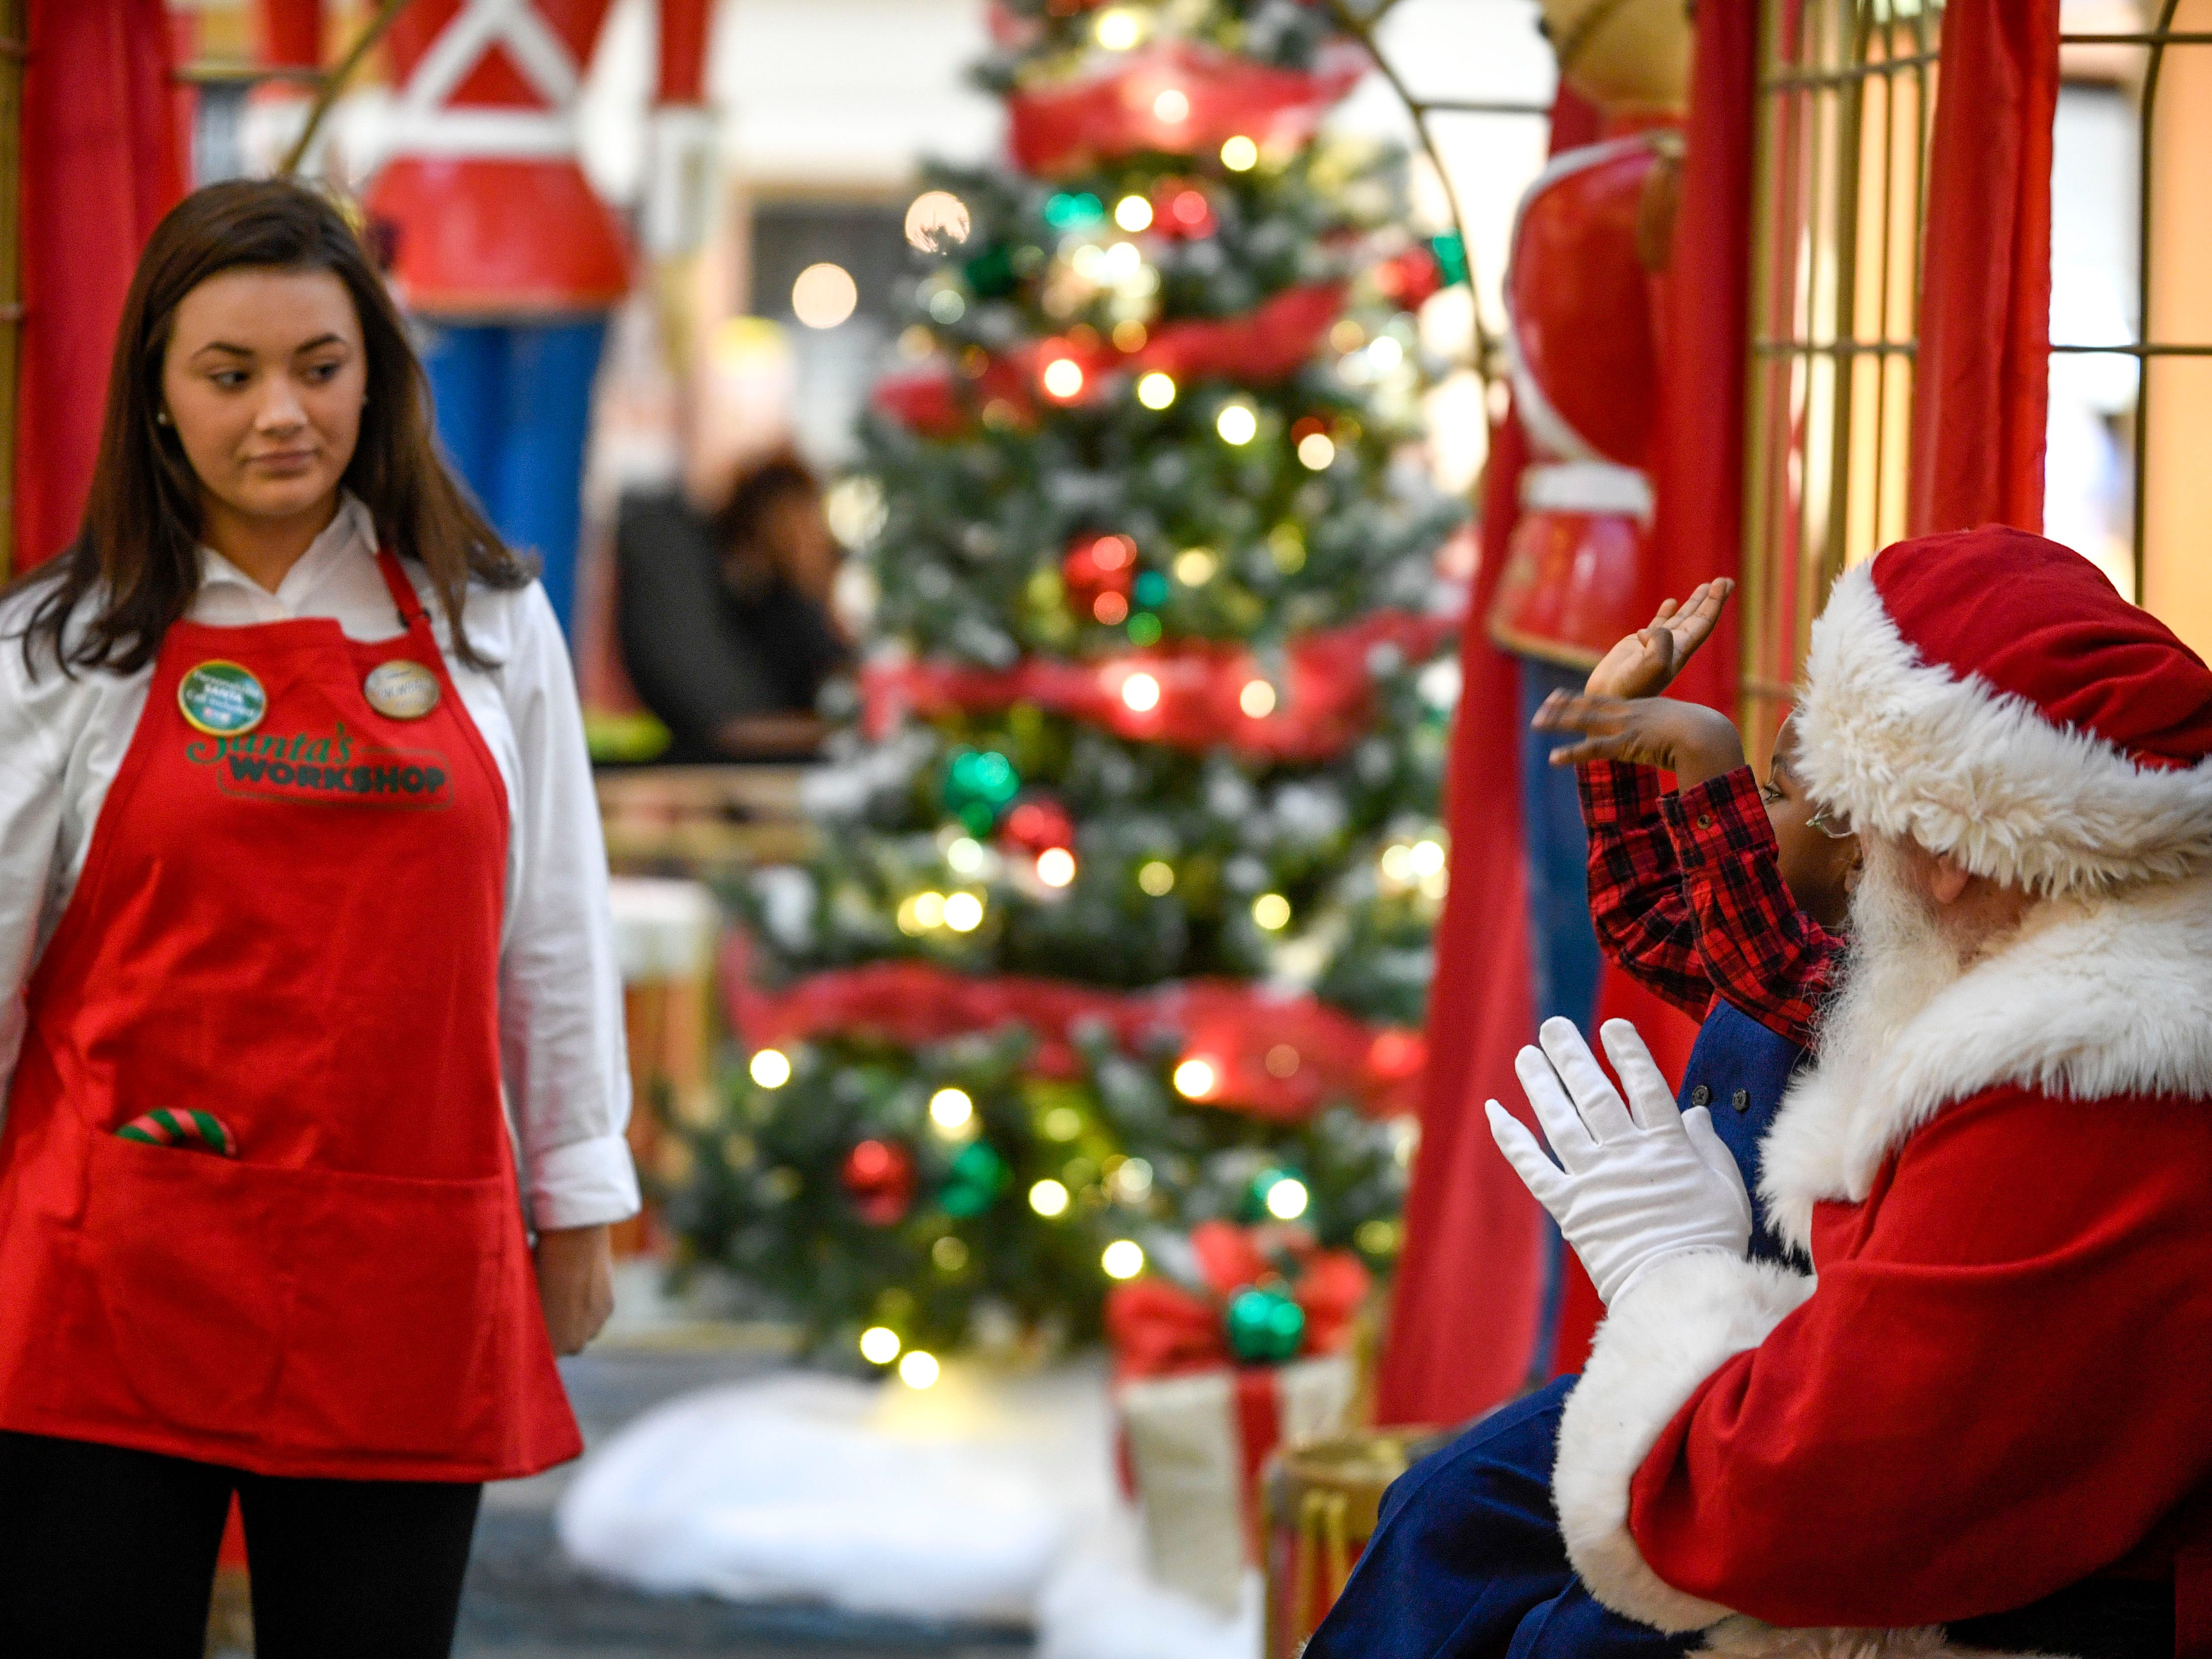 Kayla Grace Sharp, left, and Santa Claus try to distract Ryan Lyonga, 2, long enough to snap a photo with Santa at Old Hickory Mall in Jackson, Tenn., on Wednesday, Nov. 21, 2018.